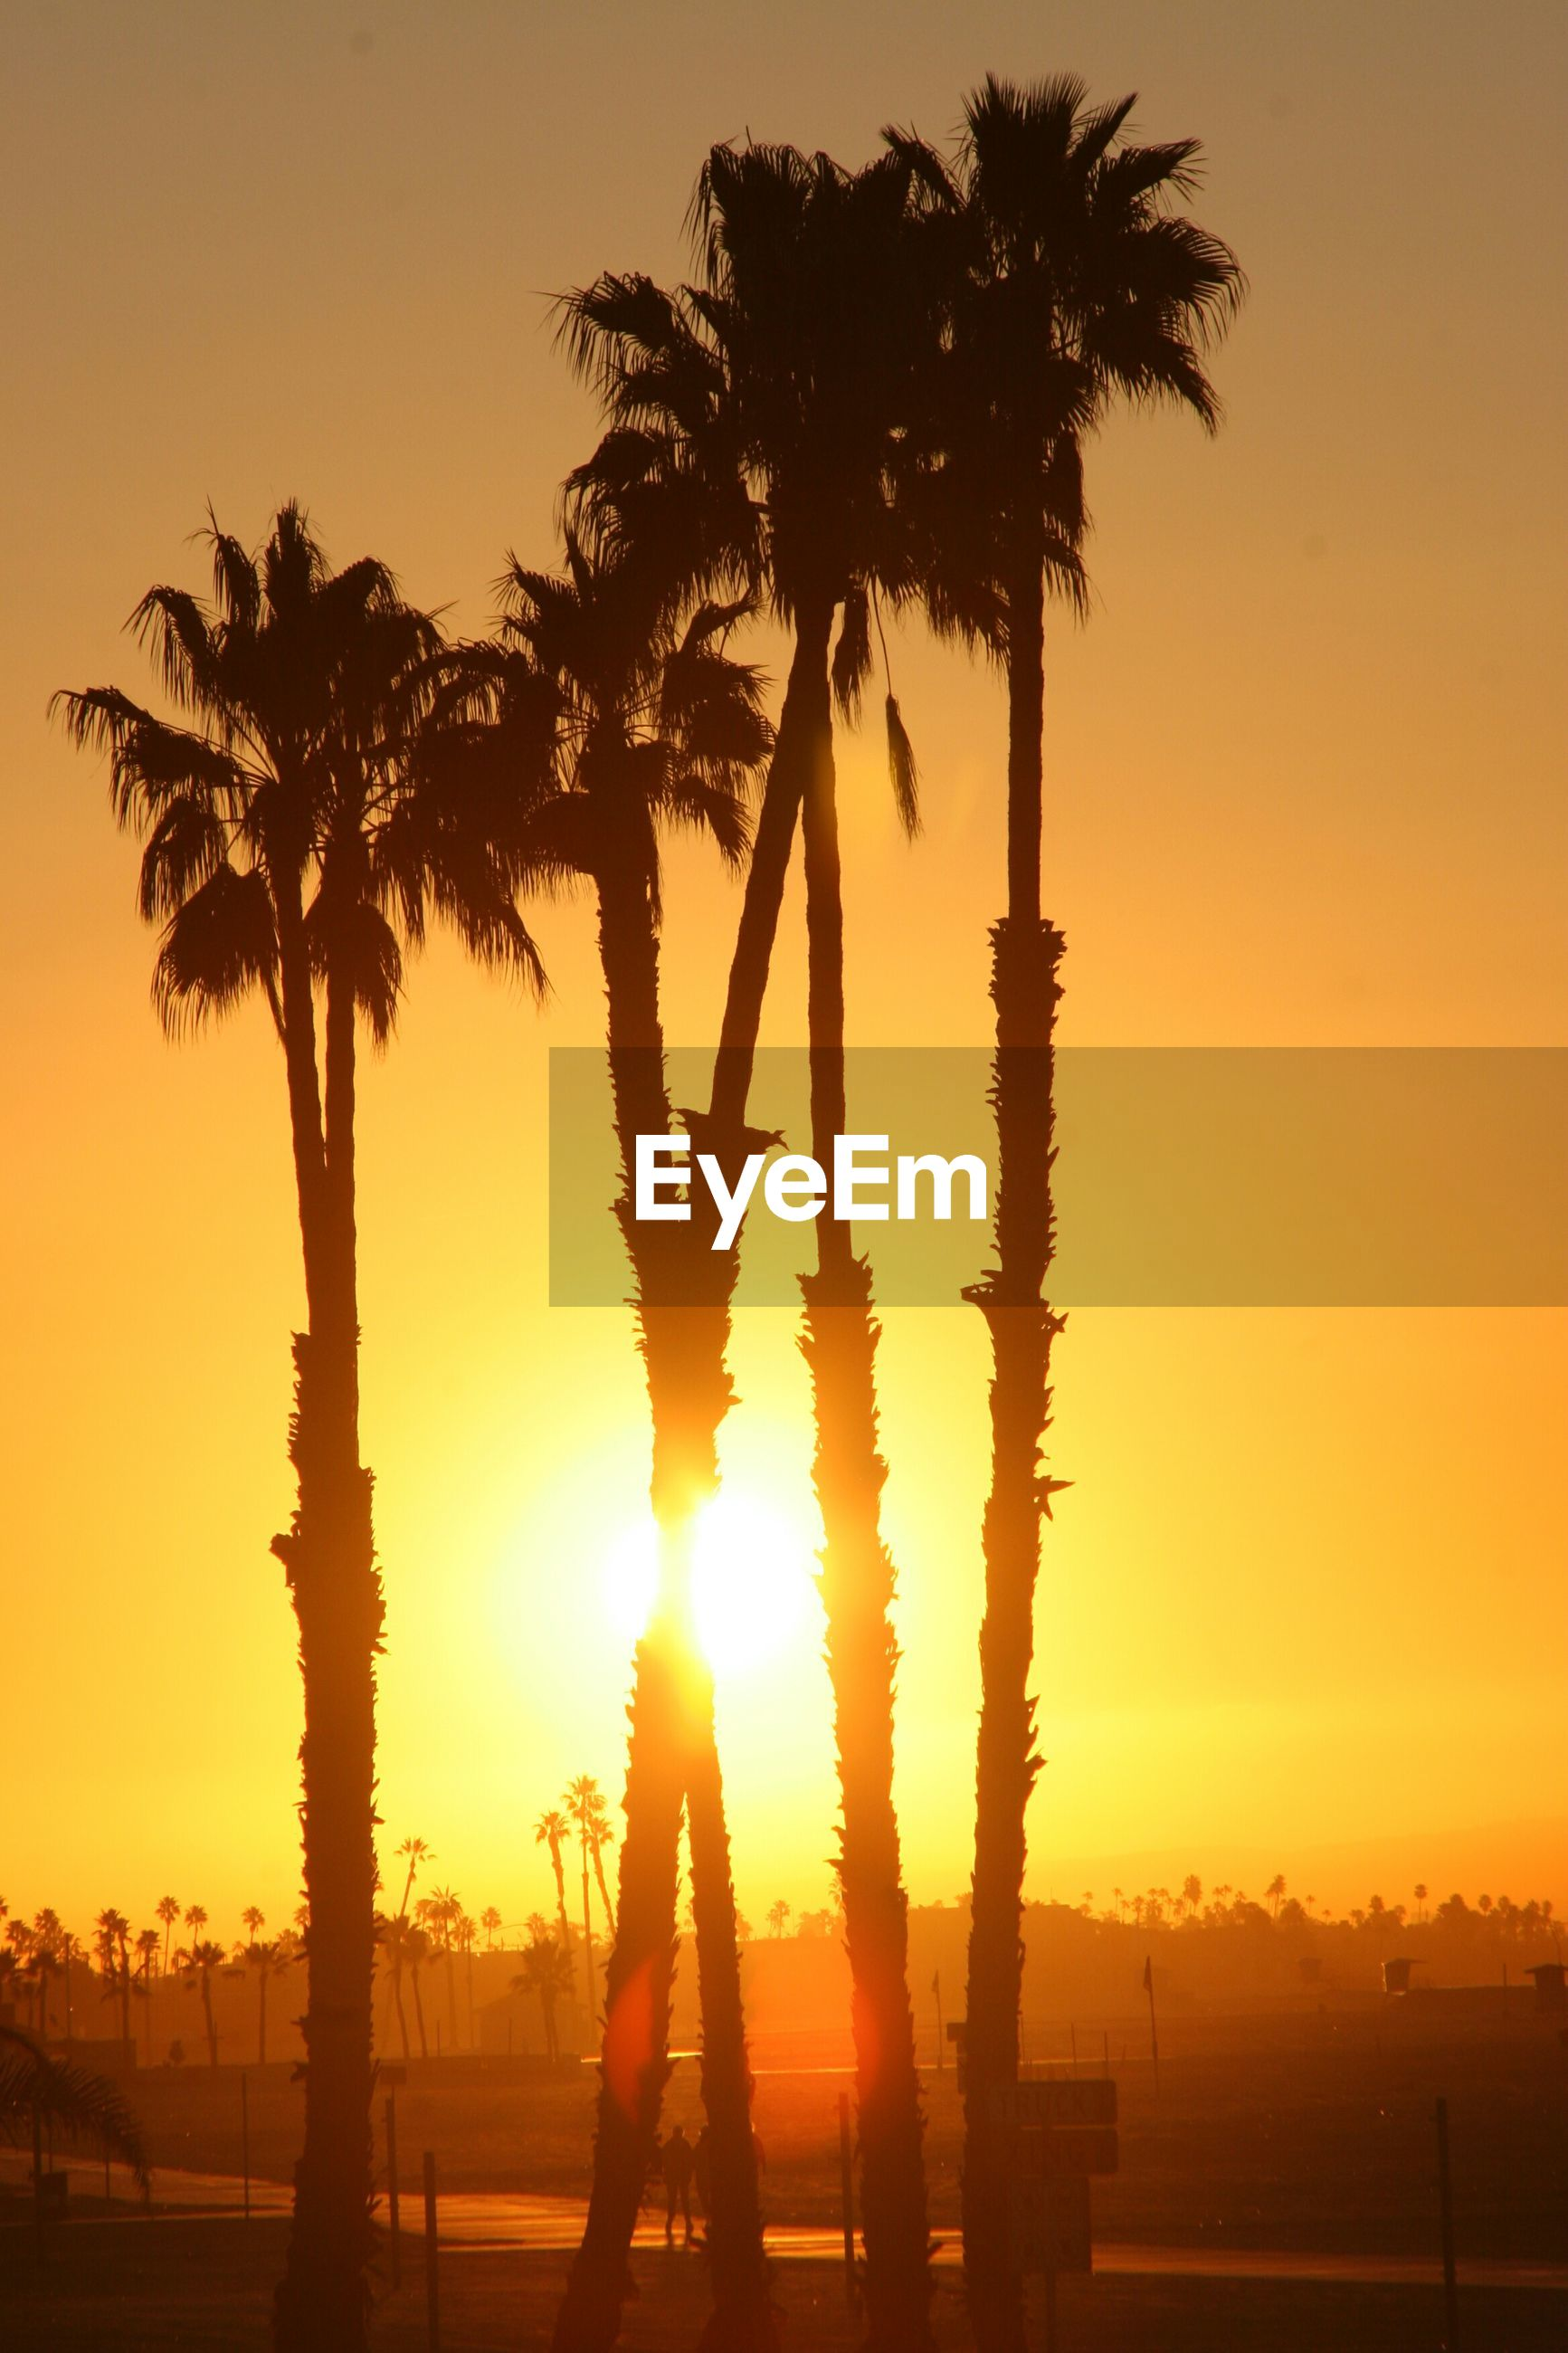 sunset, palm tree, sun, silhouette, tree, orange color, tranquility, tranquil scene, beauty in nature, scenics, nature, sunlight, sky, idyllic, tree trunk, growth, back lit, sunbeam, lens flare, outdoors